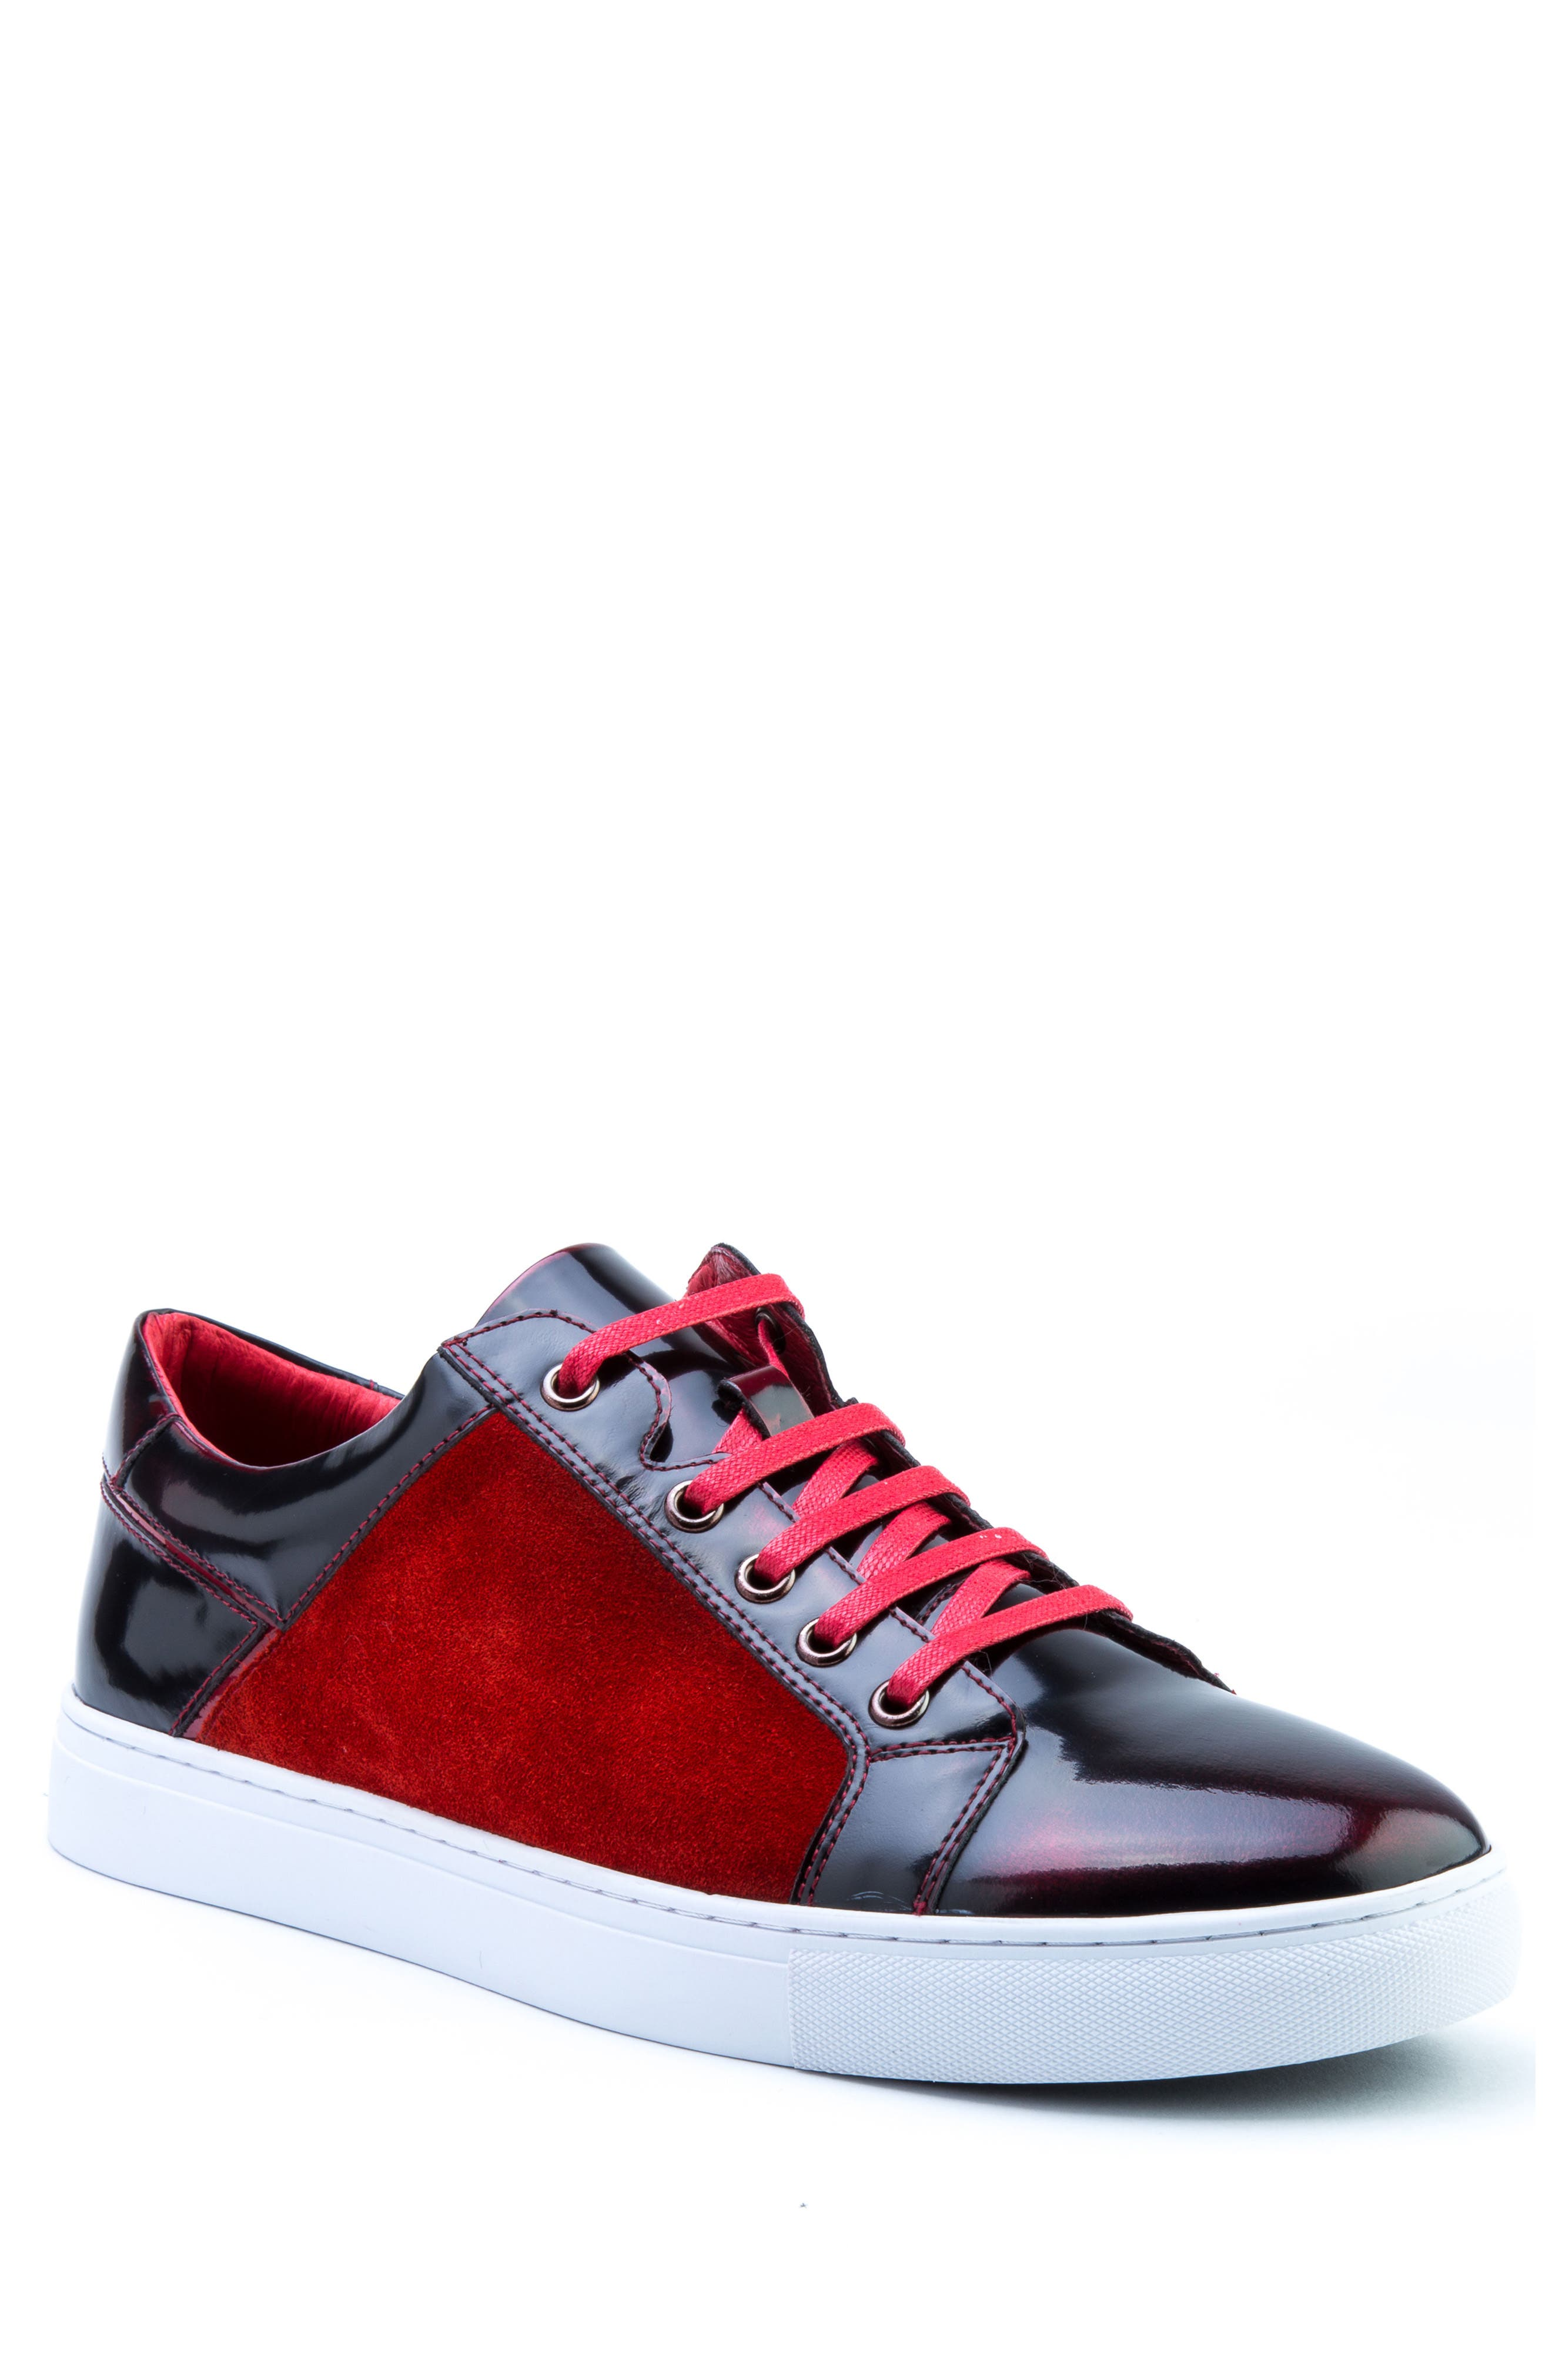 Lockhart Sneaker,                         Main,                         color, Red Leather